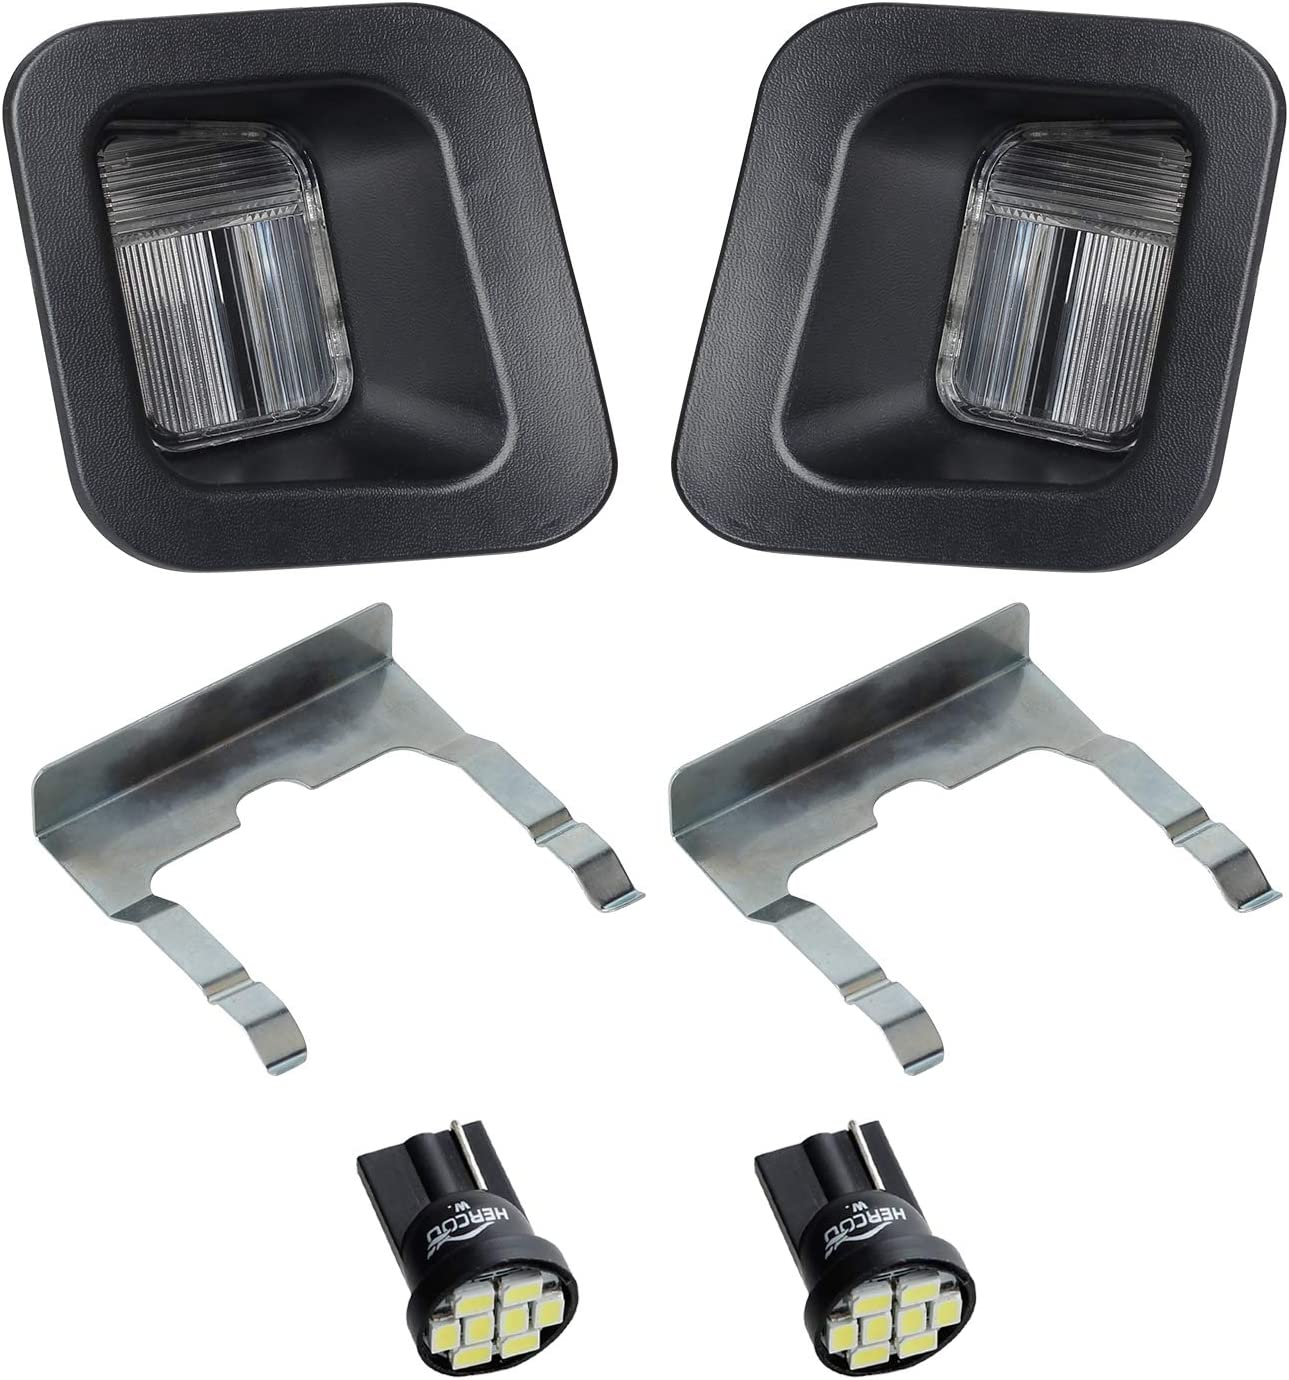 HERCOO Sales of SALE items from new works LED License Plate Light Lamp Lens Bul Housing Ranking TOP15 Black White